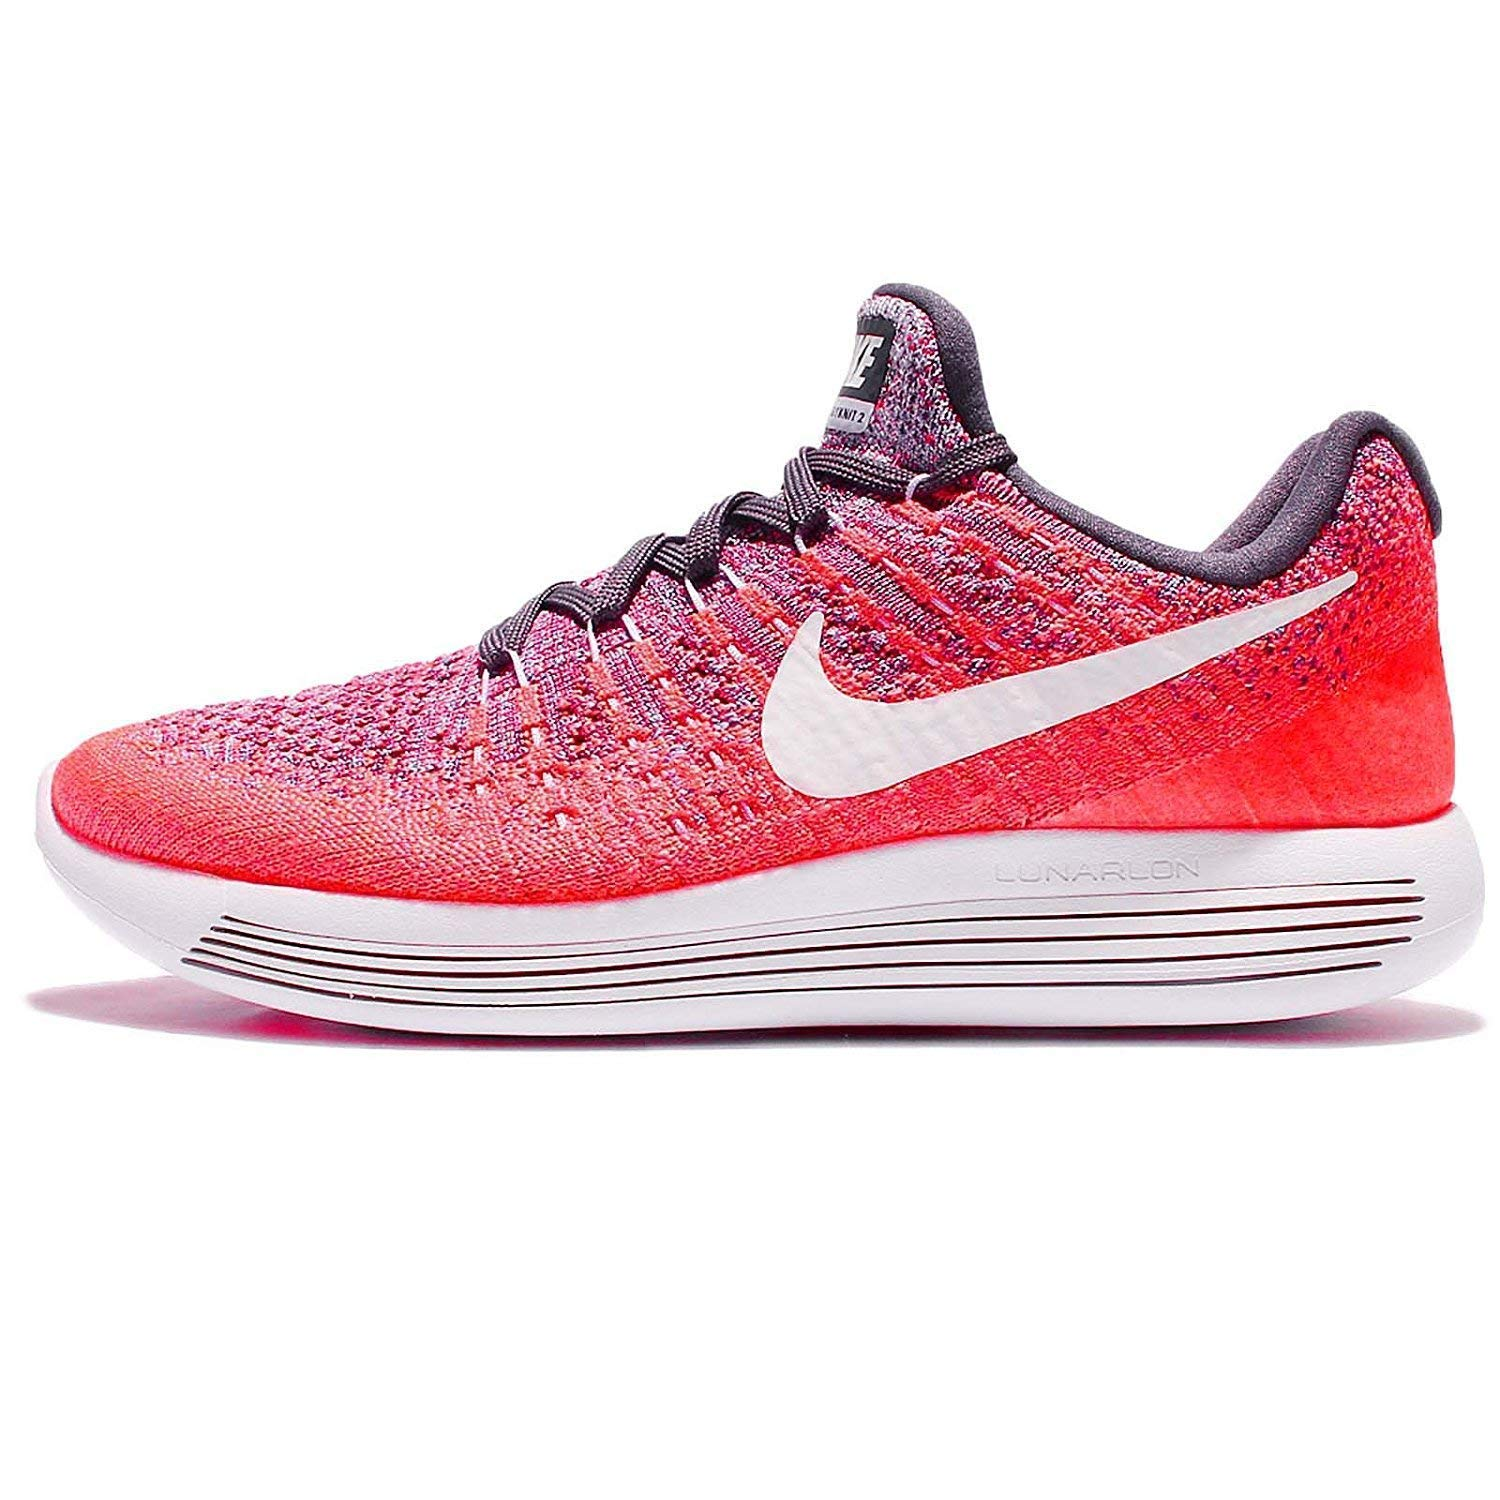 Korall   violet   Blanc Nike Lunarepic Low Flyknit 2, Chaussures de Running Homme 39 EU